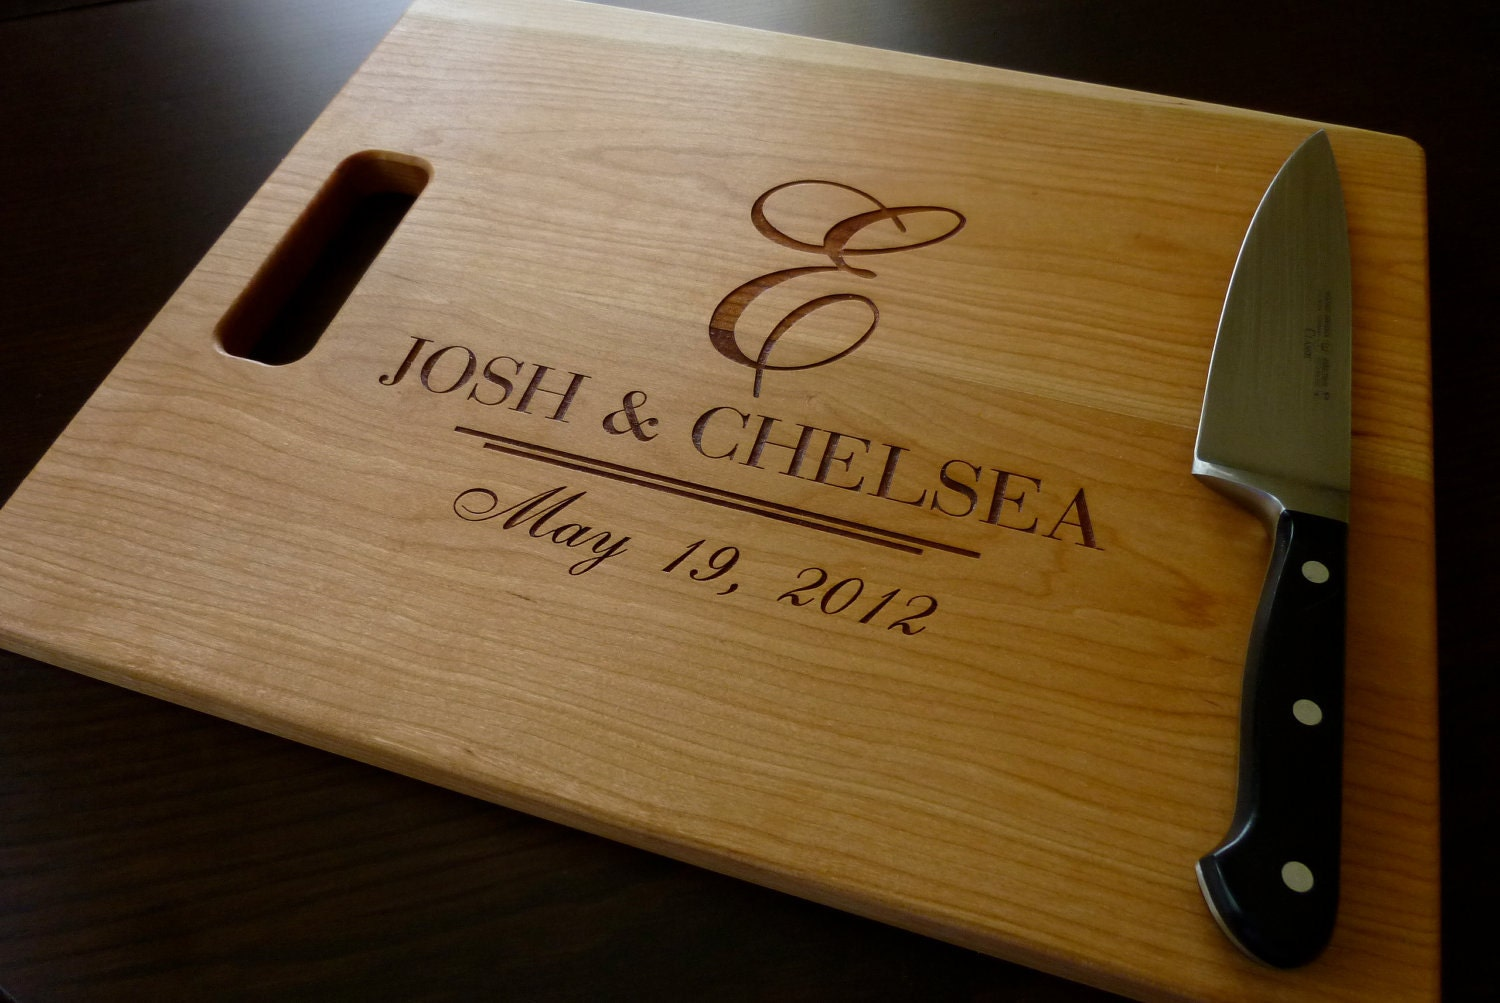 Unique Gifts Wedding: Personalized Cutting Board Custom Engraved By